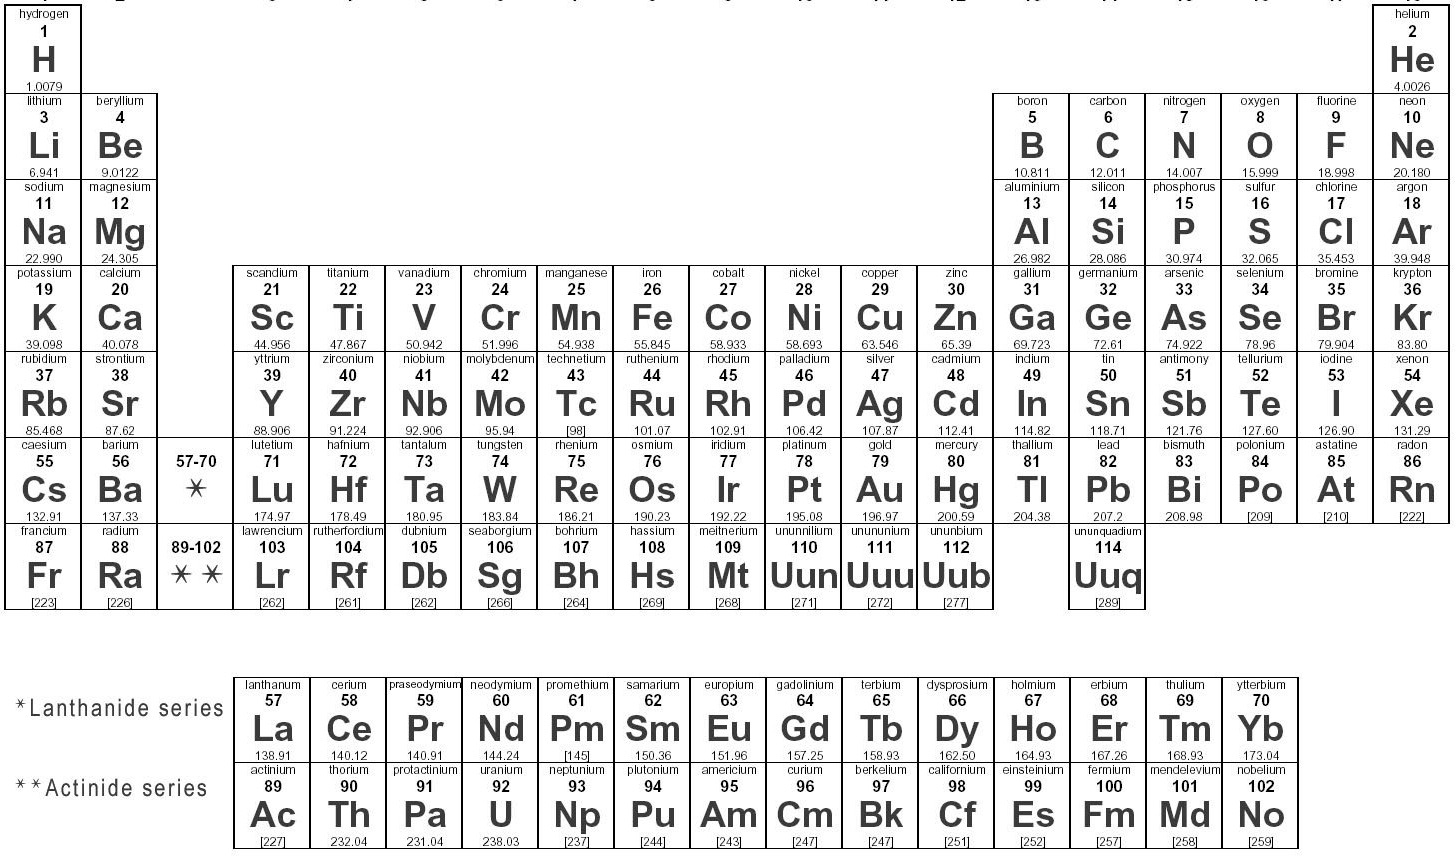 Elements compounds mixtures and the periodic table science portfolio these come from various foods that we consume in our everyday lives here is a picture of the periodic table which contains 110 elements urtaz